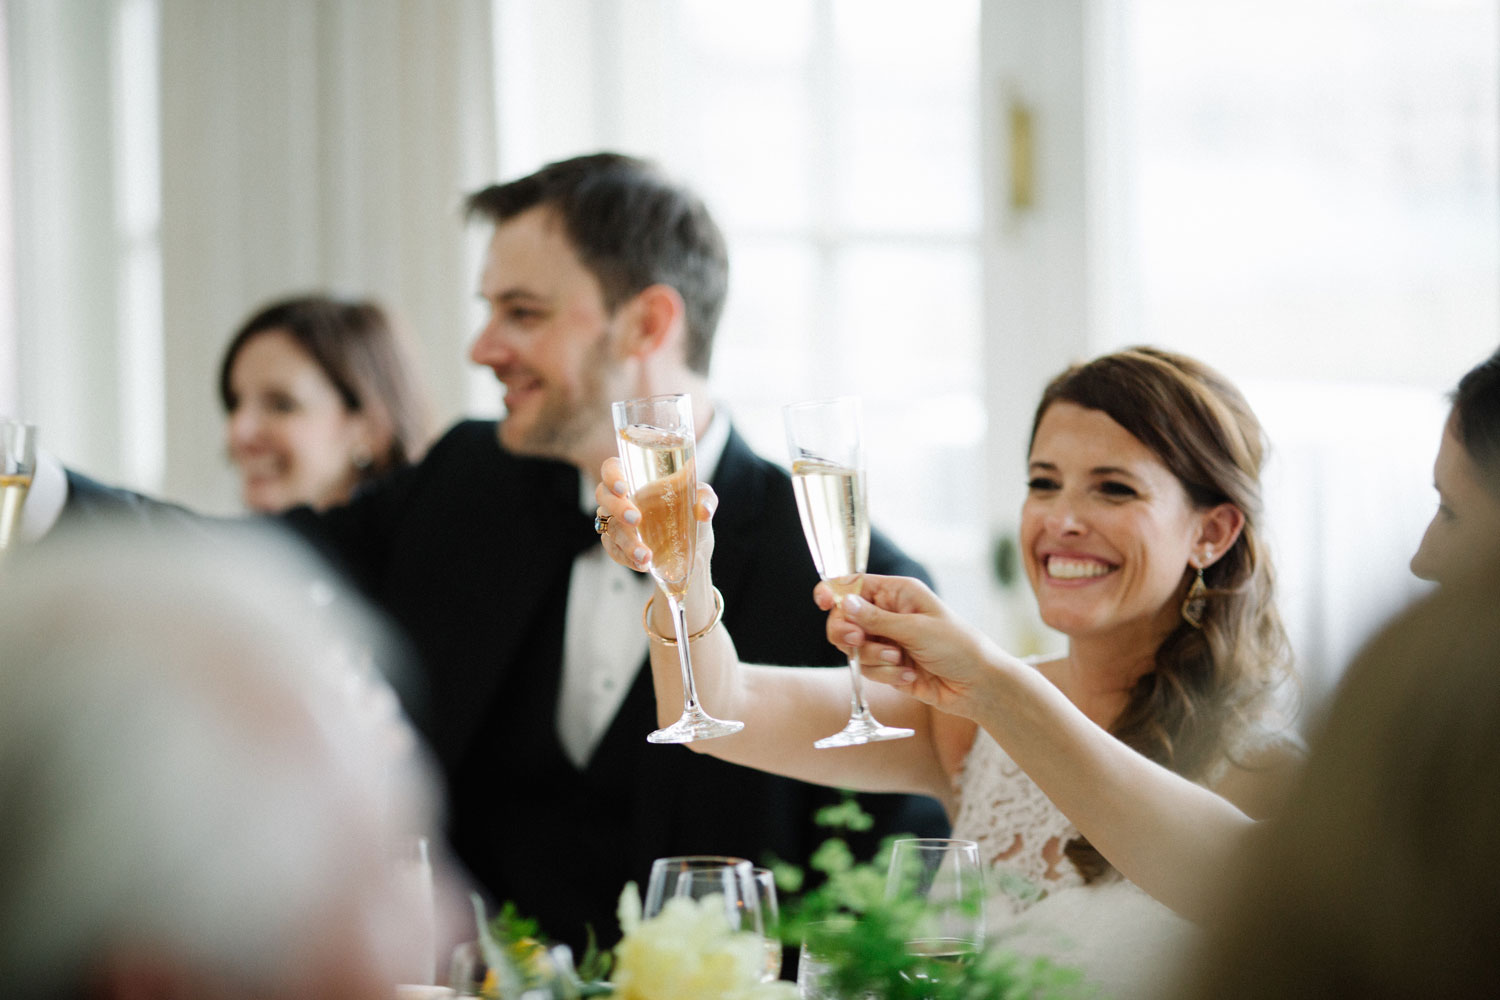 who should give toasts at weddings? schedule for wedding speeches